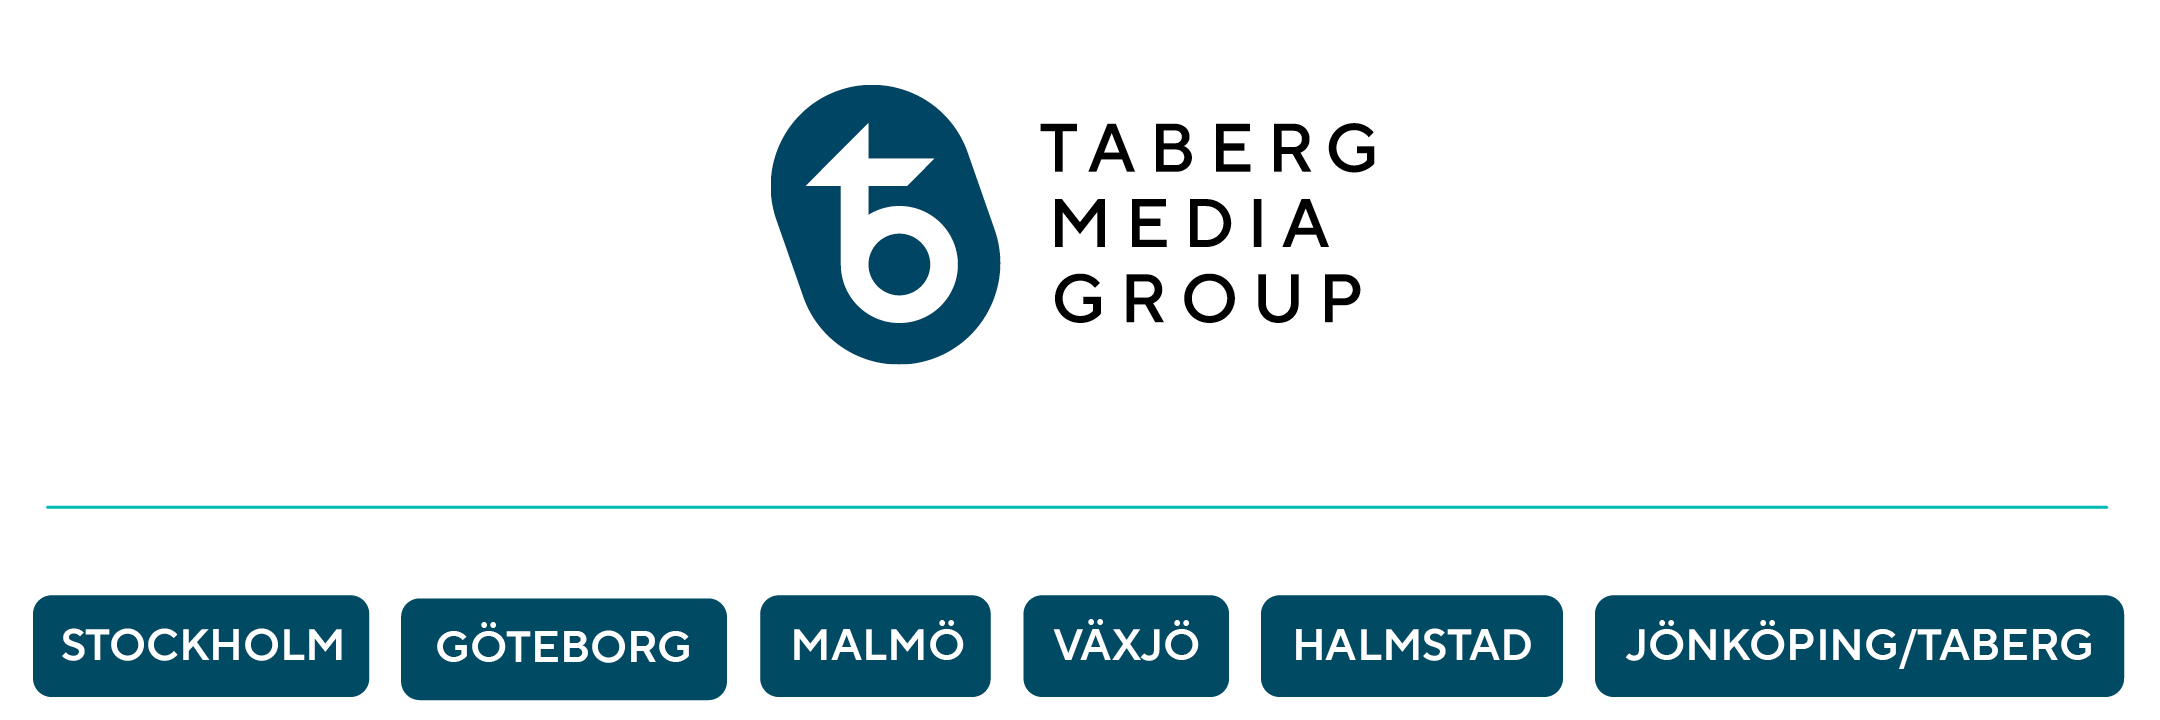 Taberg Media Group - Bolagen